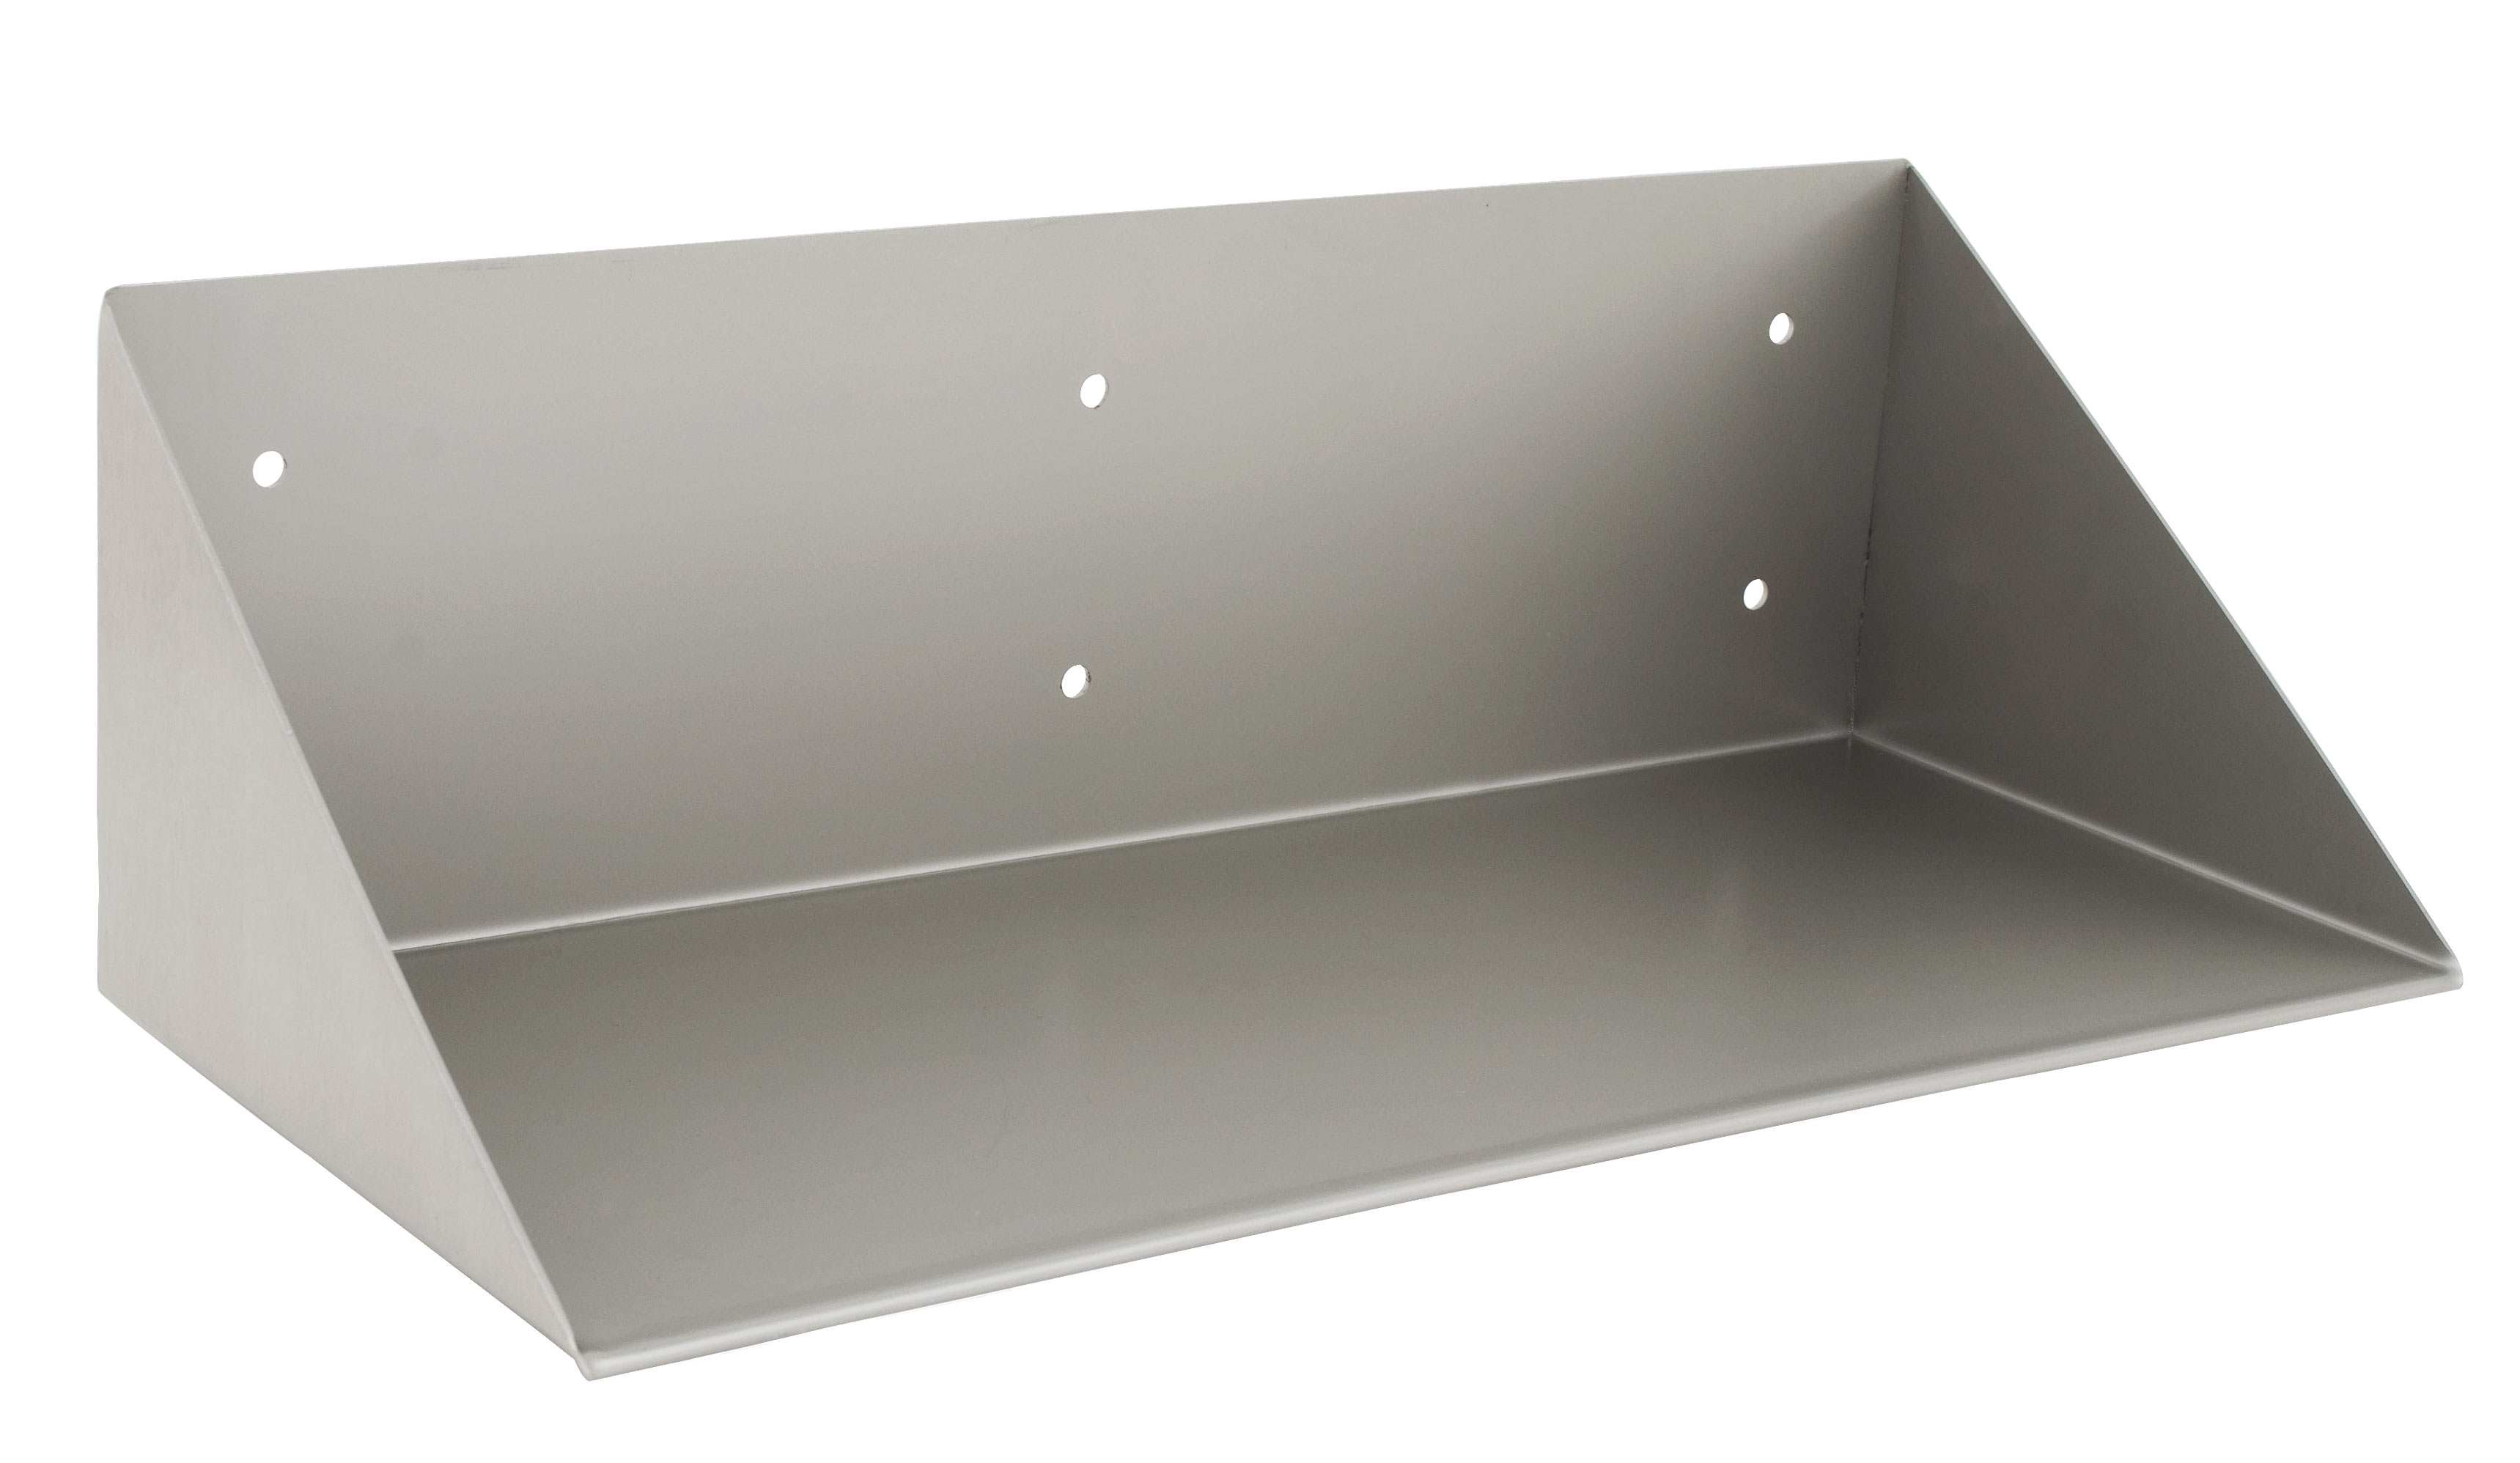 stainless holder shelf uk mounted amazon wall toilet diy co steel with brushed taydee tools dp roll